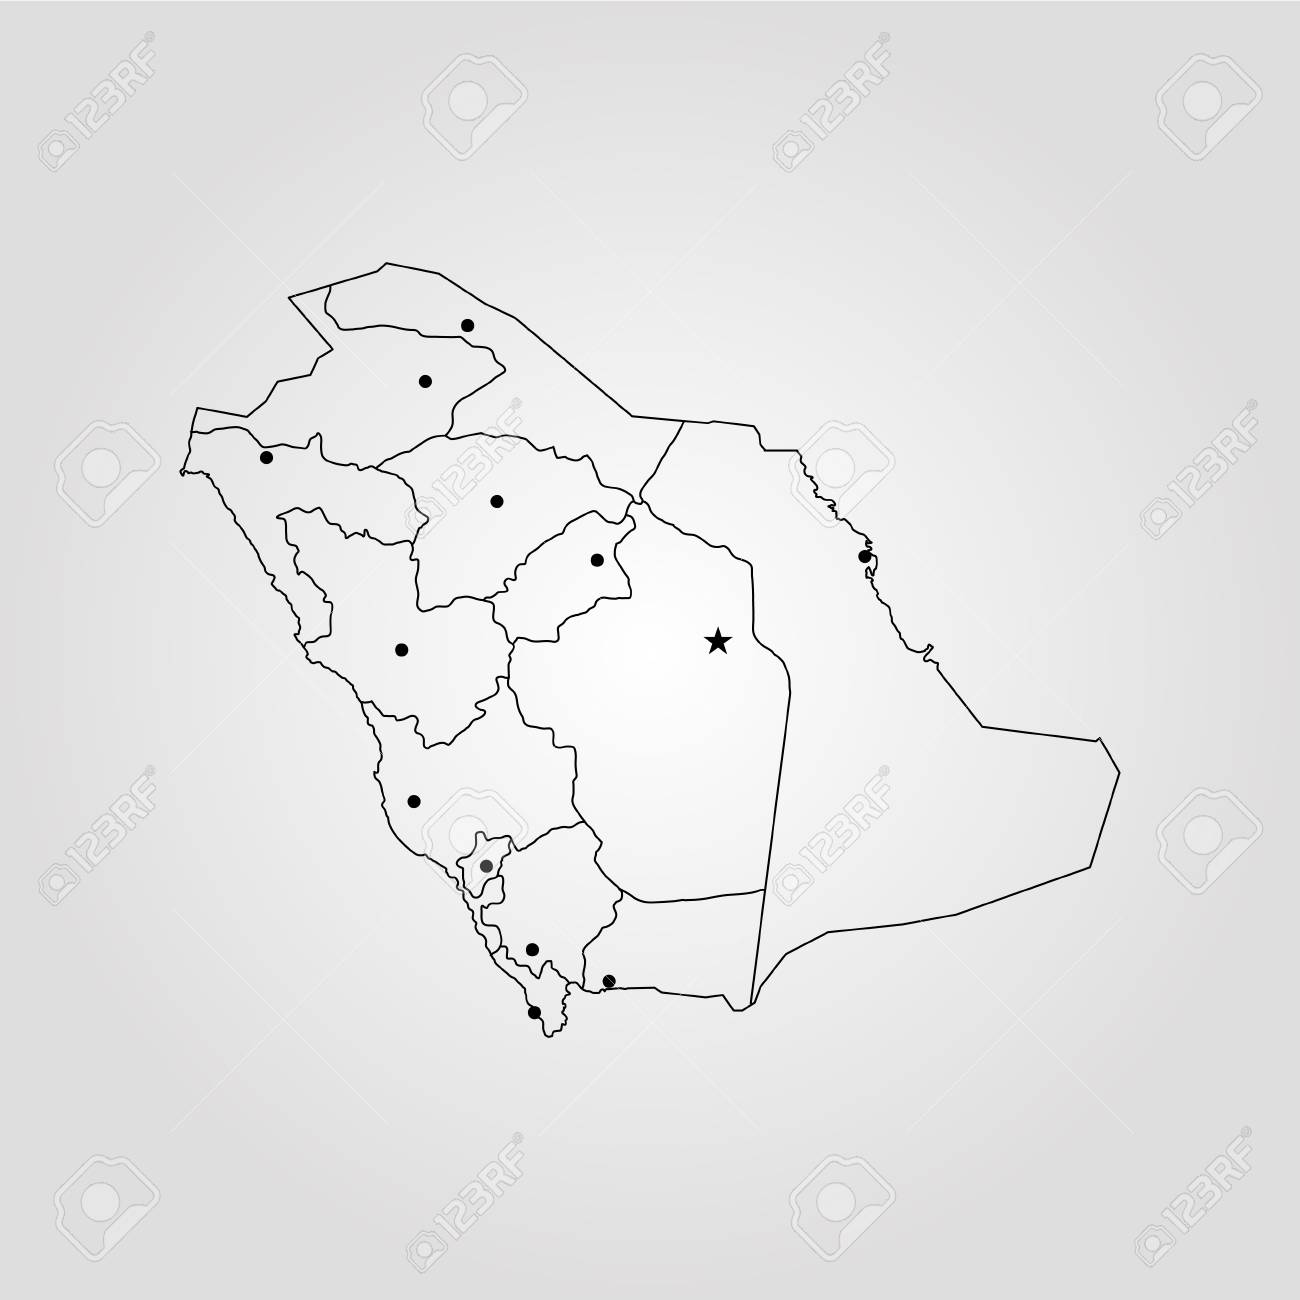 Map of Saudi Arabia. Vector illustration. World map